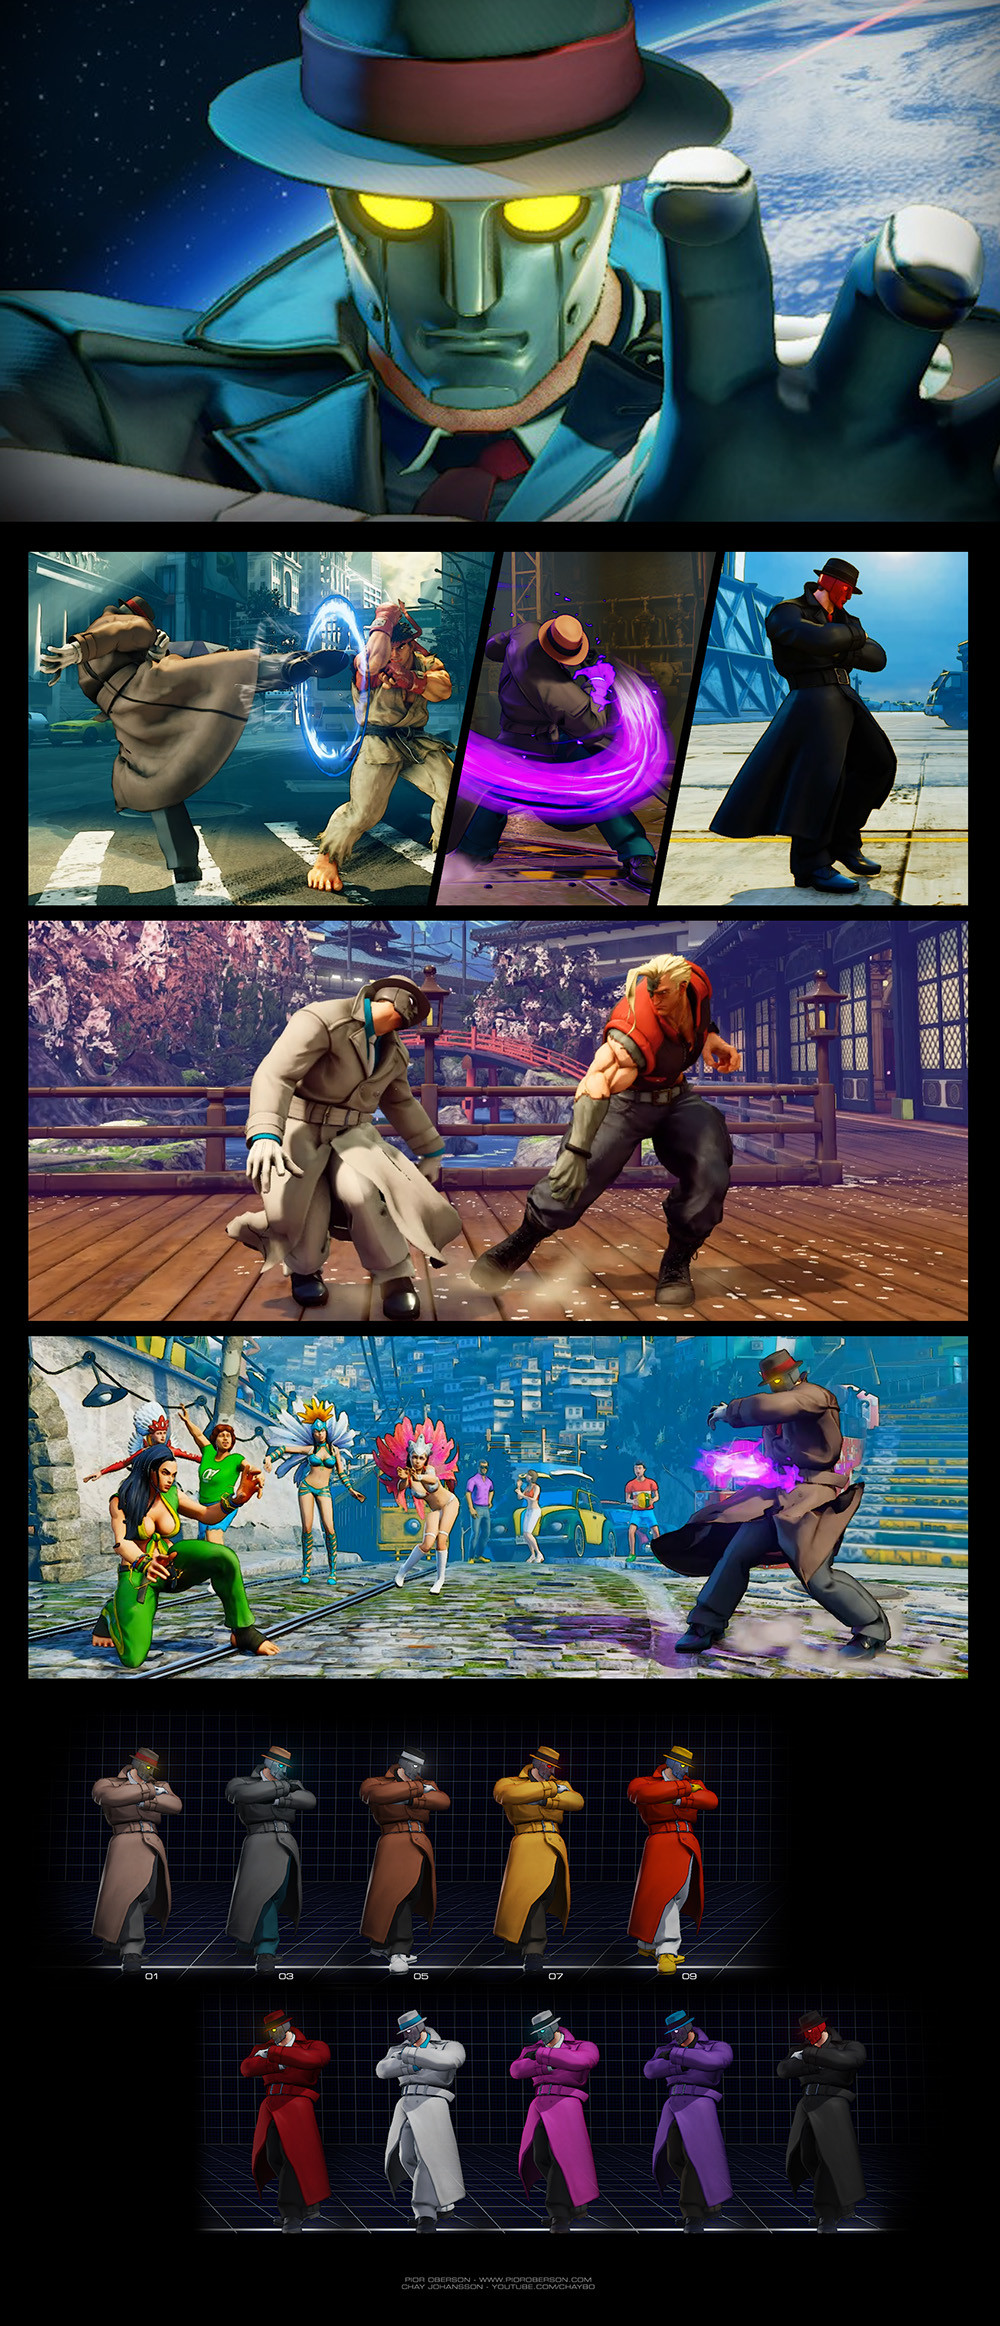 ArtStation - Street Fighter V mod - Q, Pior Oberson